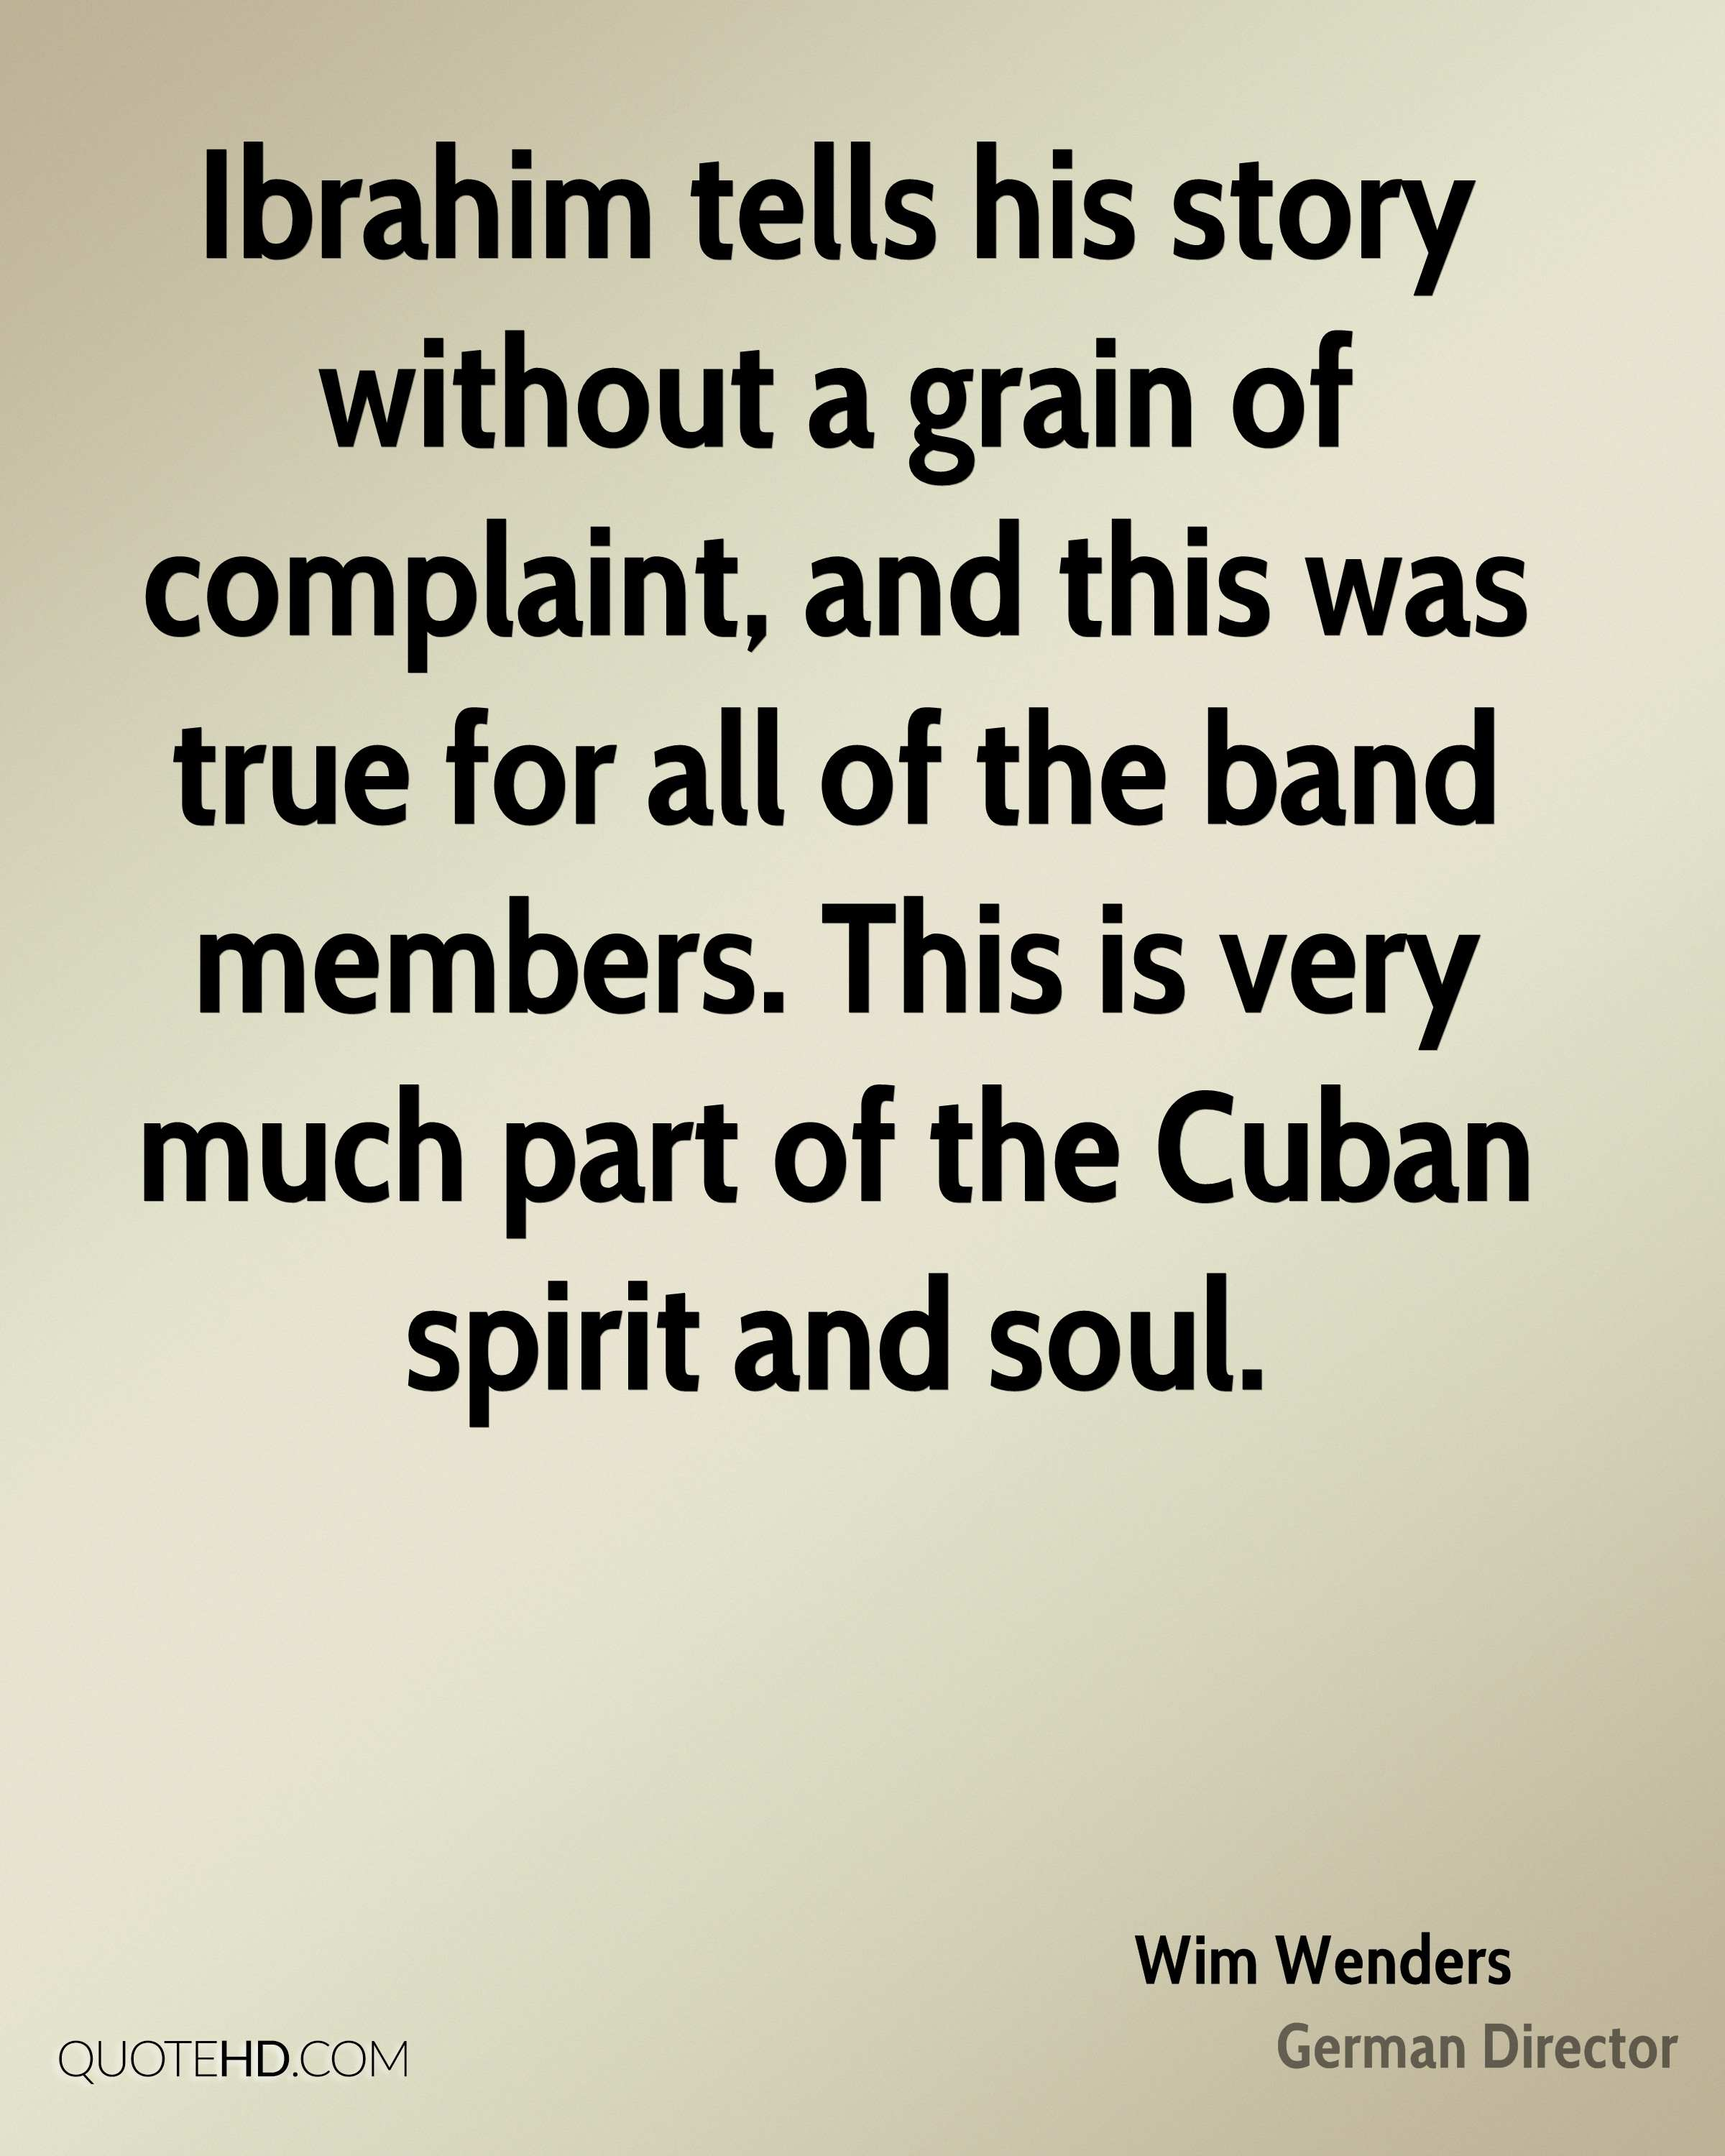 Ibrahim tells his story without a grain of complaint, and this was true for all of the band members. This is very much part of the Cuban spirit and soul.